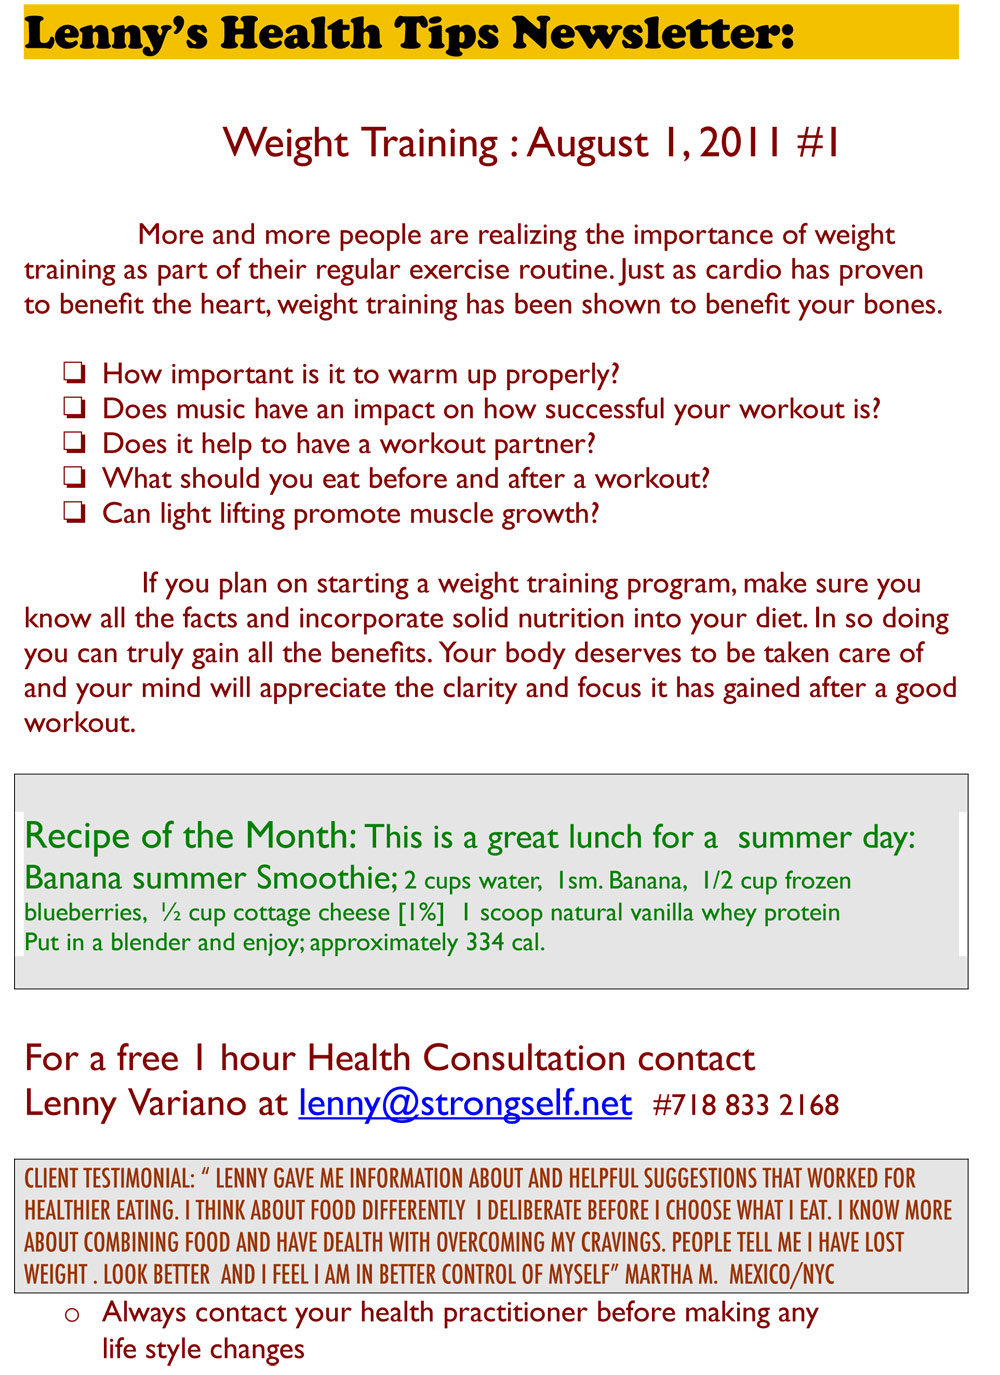 Tips on Weight Training from Lenny Variano, www.strongself.net